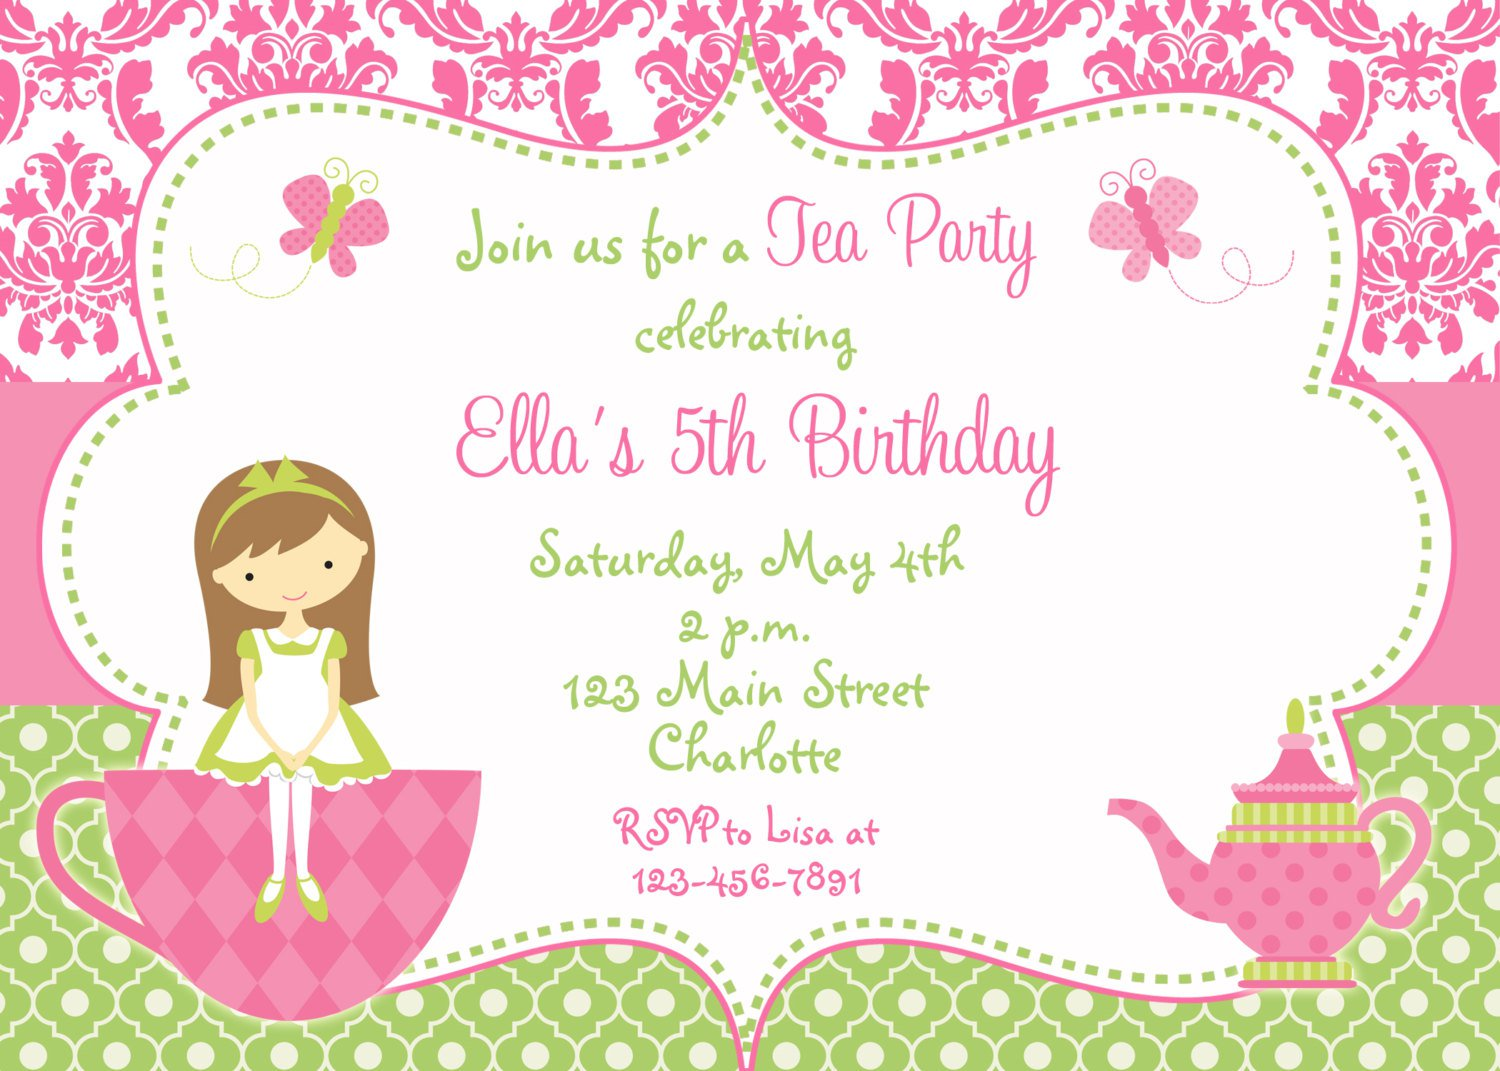 Printable Party Invitations Etsy